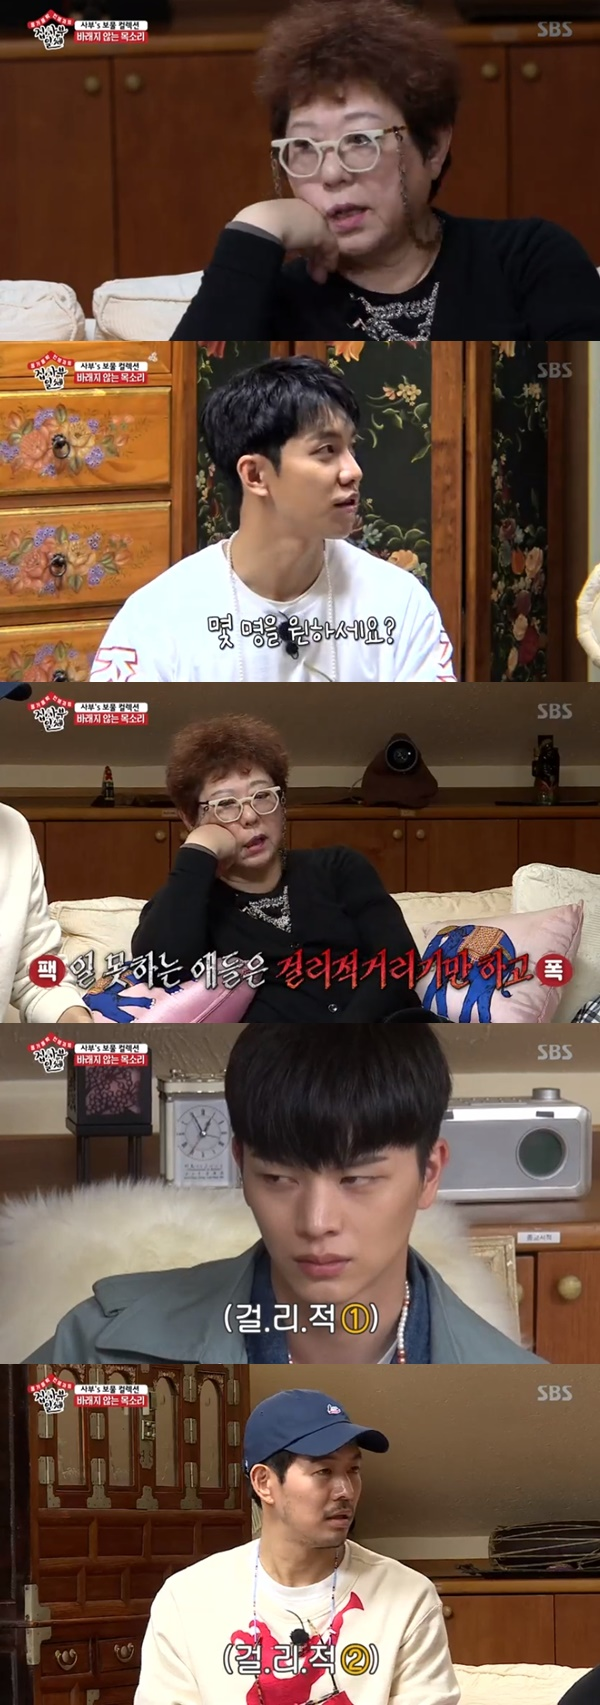 <p> Yang Hee-eun this All The Butlers members back to the fastball.</p><p>7 Days afternoon broadcast SBS TV All The Butlerssinger Yang Hee-eun, this part appeared to form more type Lee Sang-yoon Yook Sungjae Lee Seung-gi to teach me.</p><p>This day, Yang Hee-eun is one conversation during the hungry,and was furious. Lee Seung-gi meals ready to let us help,he said, but Yang Hee-eun is of course not, it failed to take its distance. Basically we all work hard. Well the game that are important. Who well?he asked.</p><p>This is Yang Hee-eun ye that like role game to you?And he said, Lee Seung-gi is four to play the game?and confidently replied. Yang Hee-eun is corny, disgusting. The game is outstandingly fun, notfor a laugh, I found myself.</p>